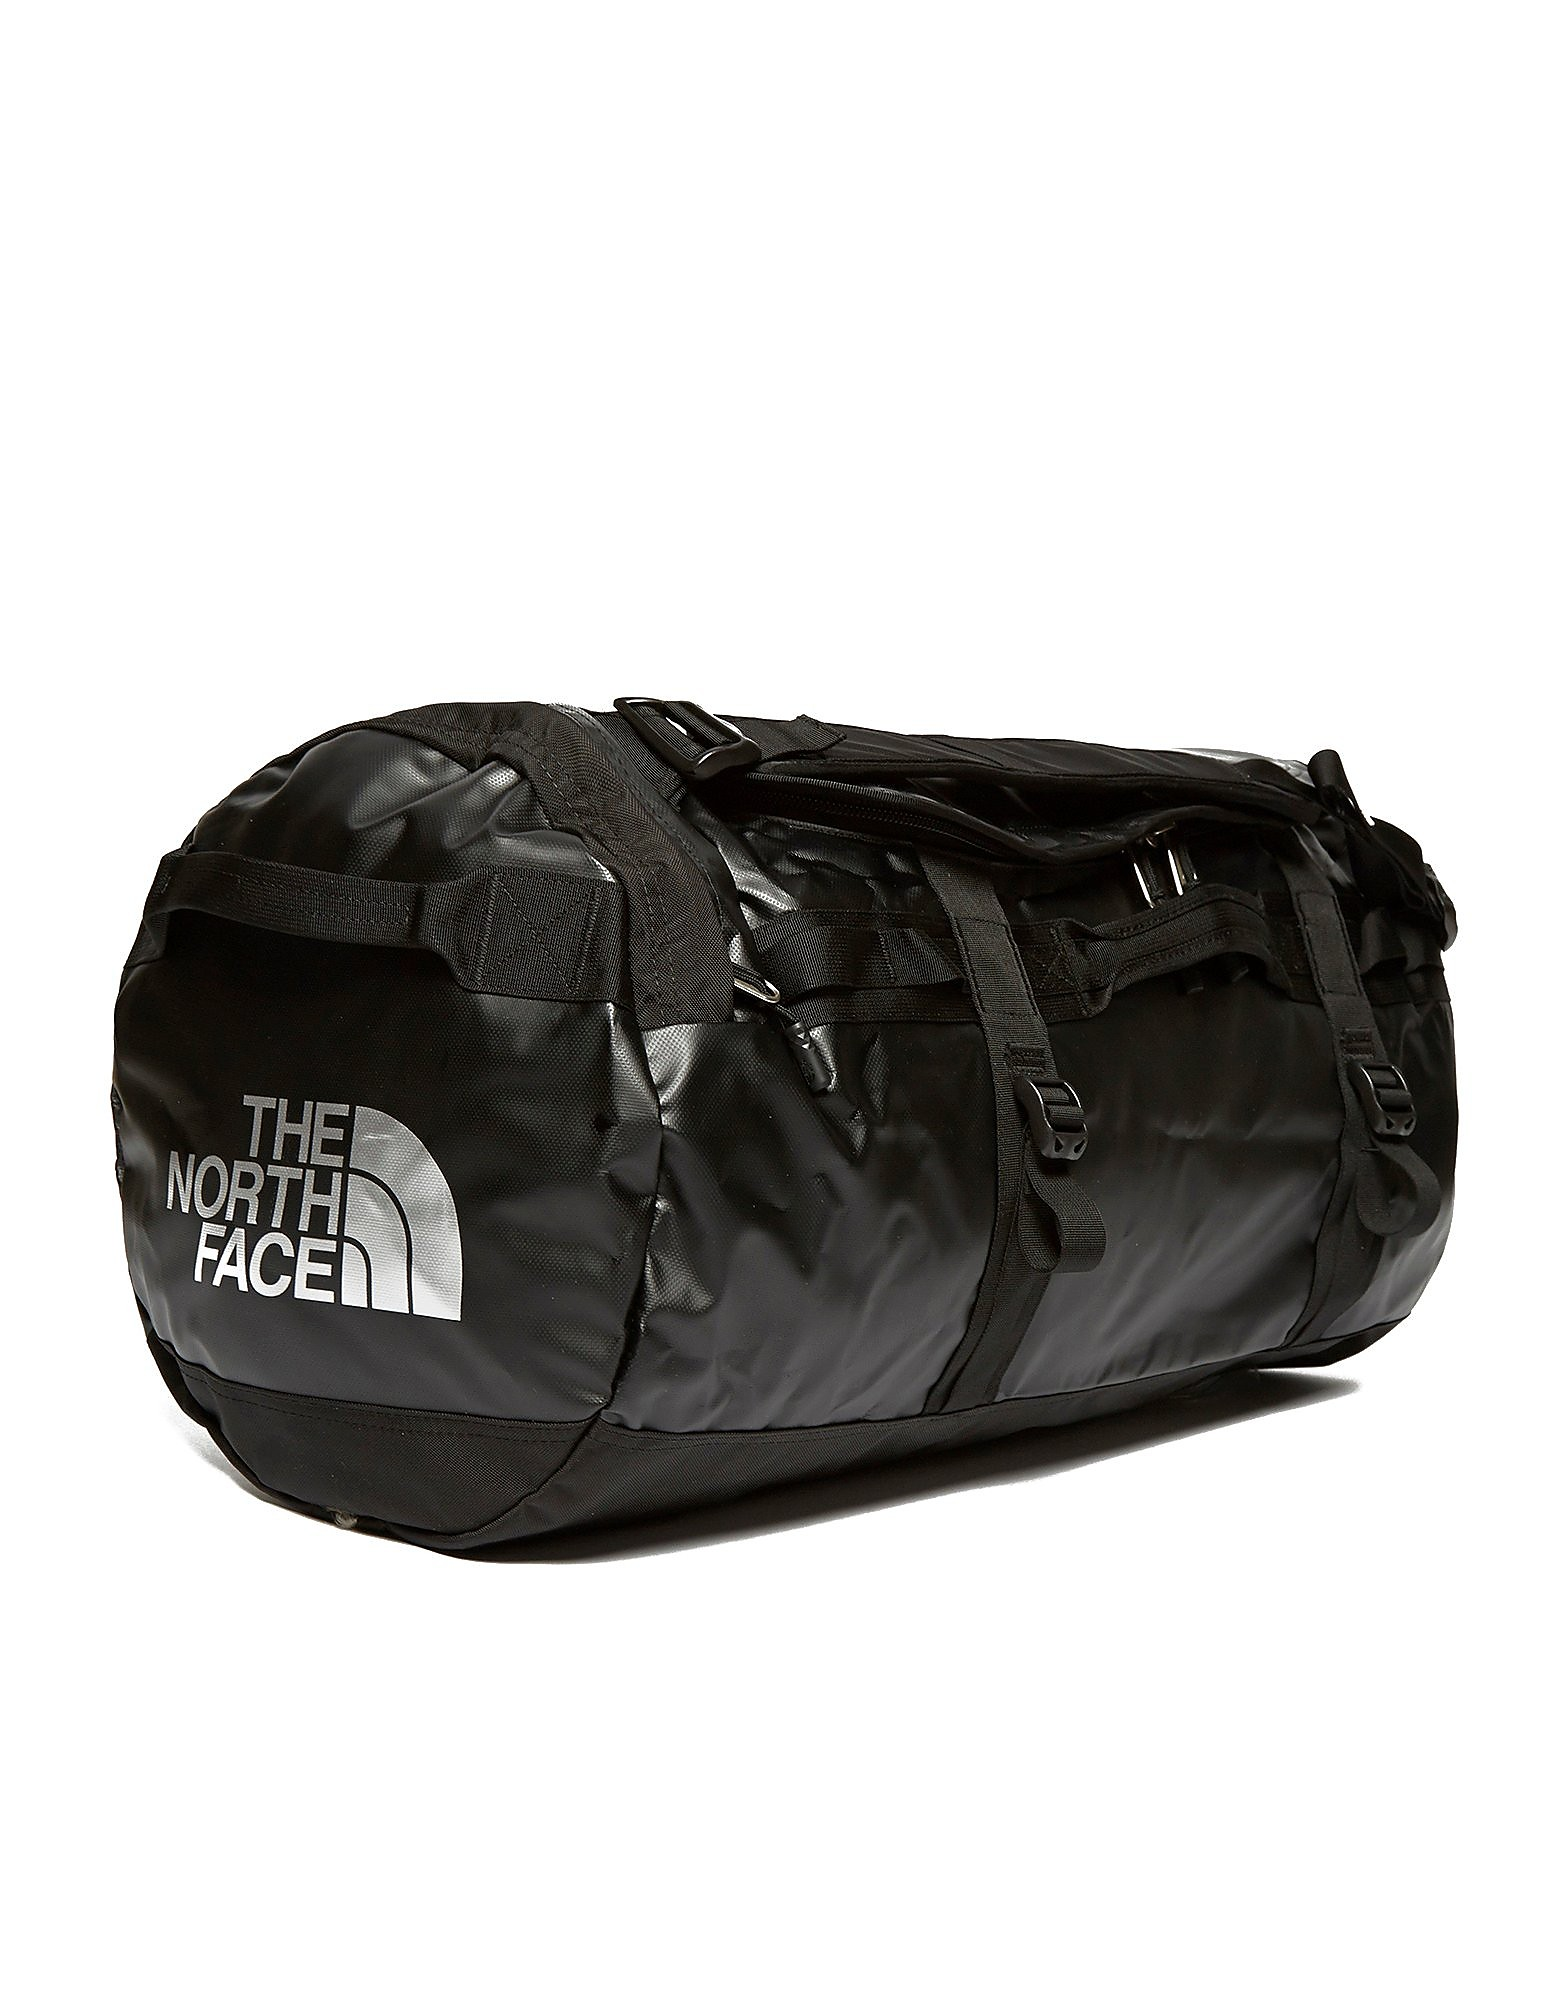 The North Face Large Base Camp Duffel Bag